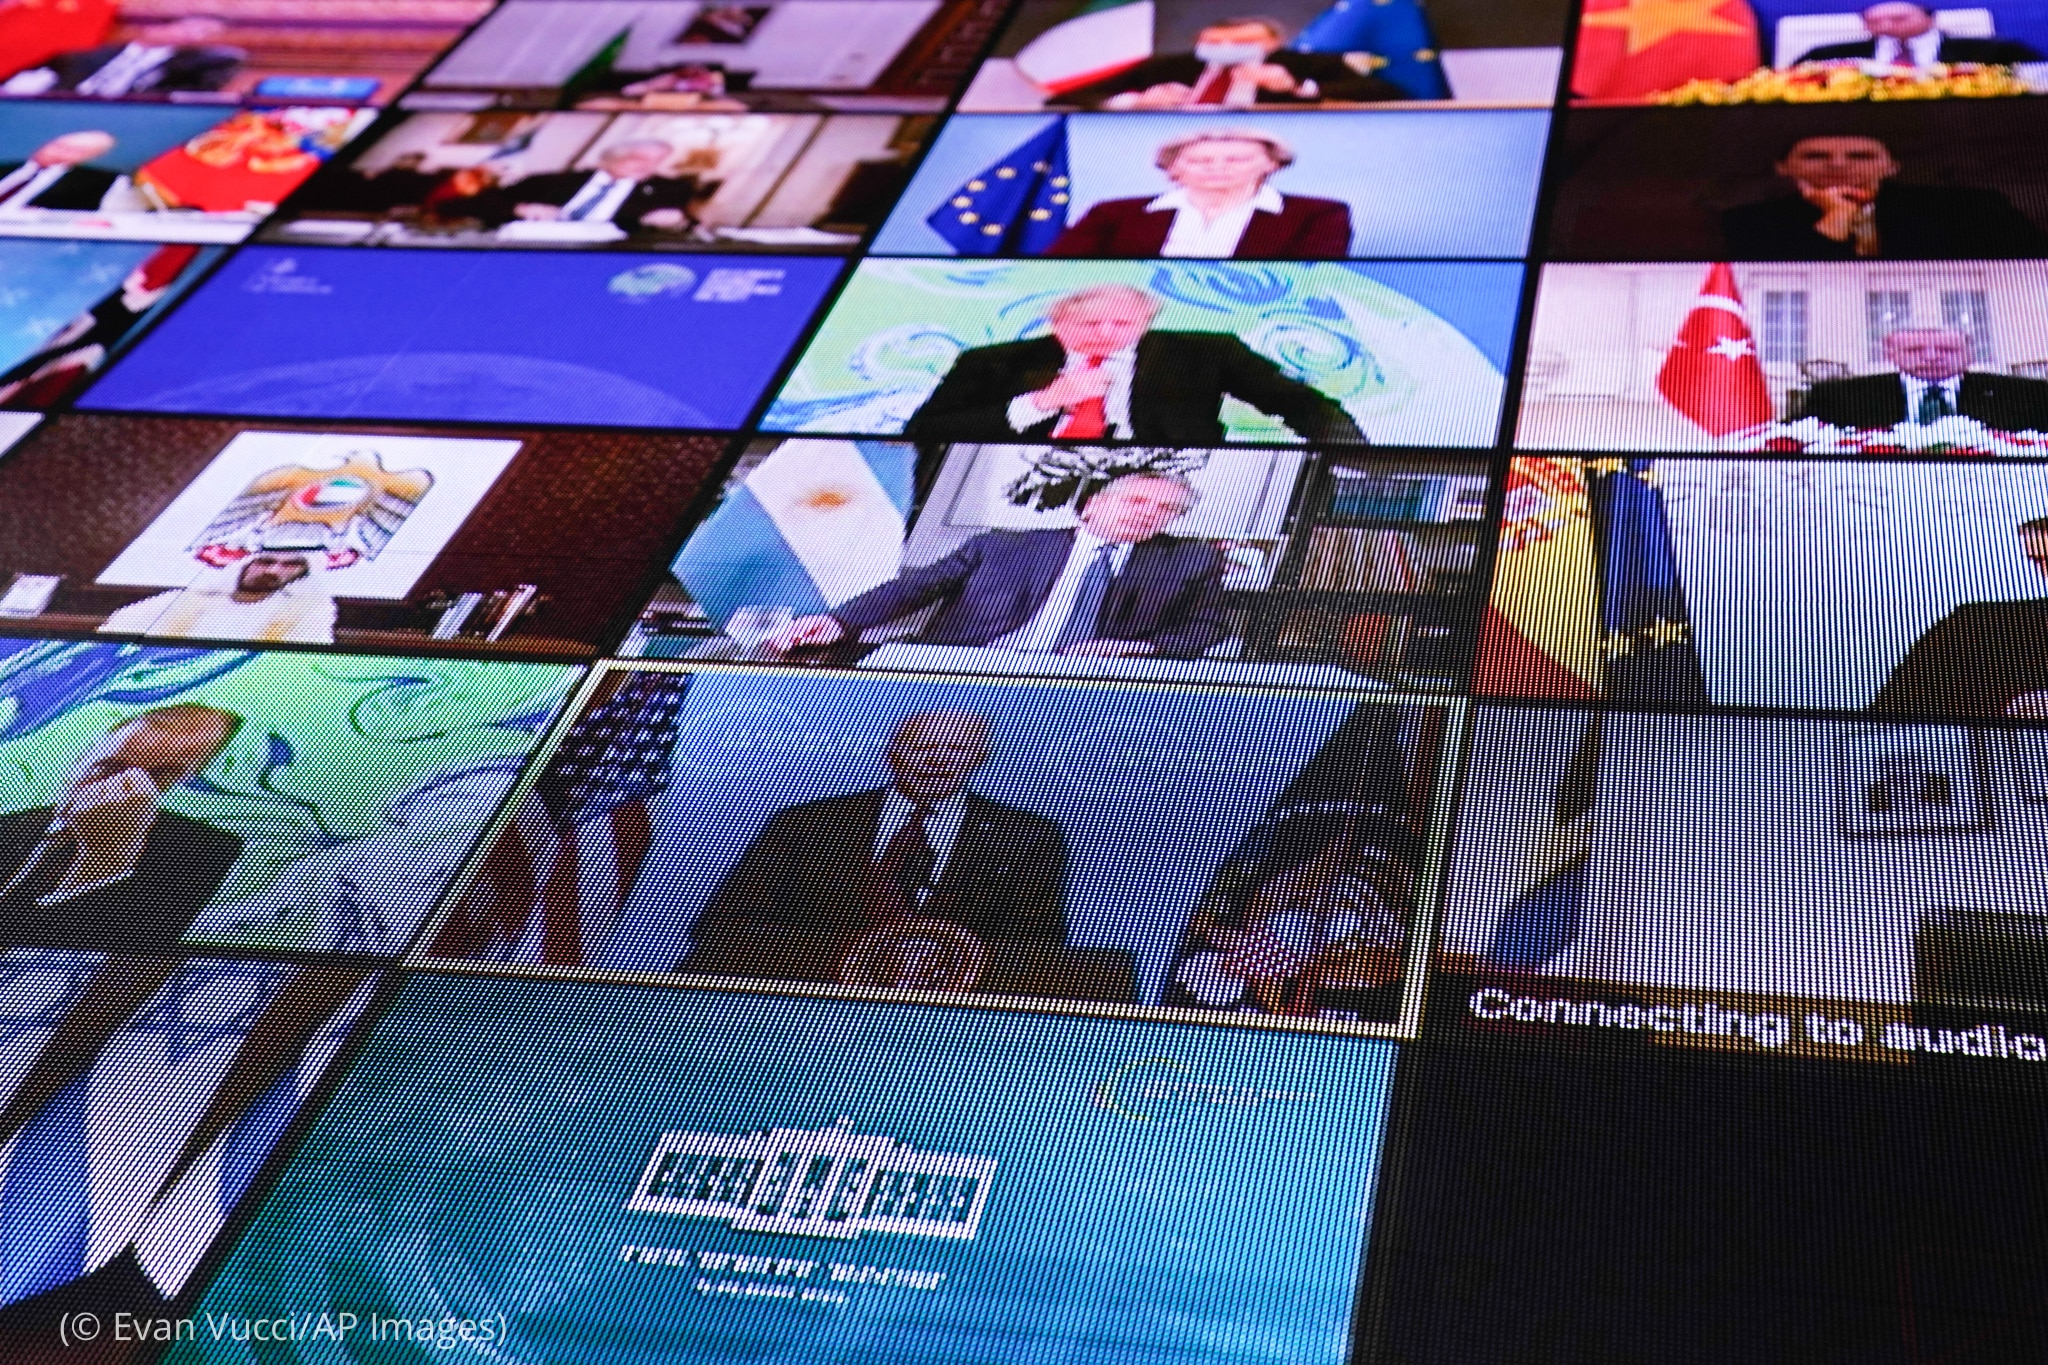 Computer screen showing multiple screens of world leaders attending meeting (© Evan Vucci/AP Images)